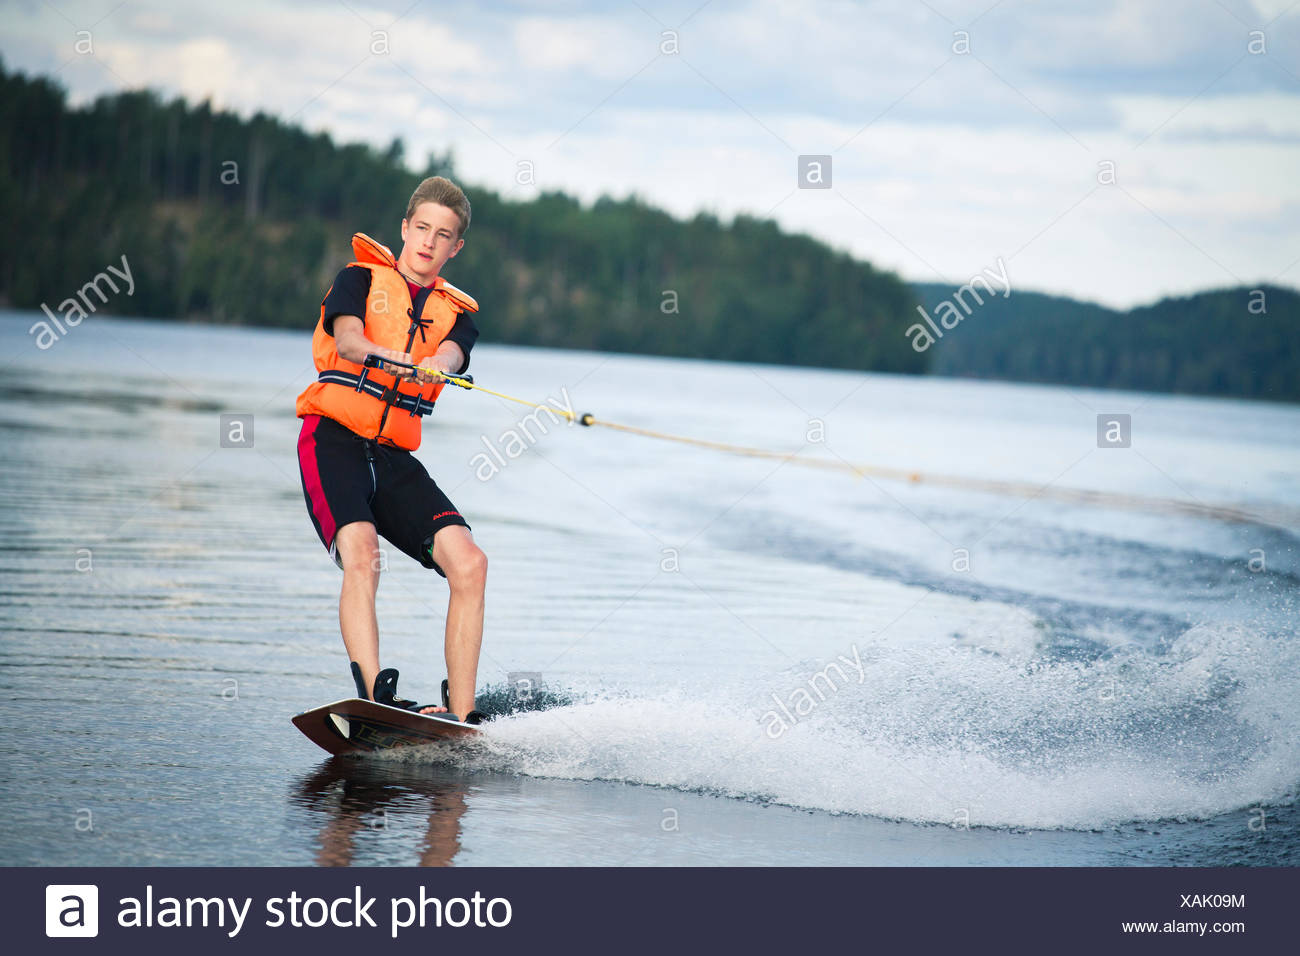 Sweden, Ostergotland, Lake Risten, Teenage boy (14-15) wakeboarding - Stock Image